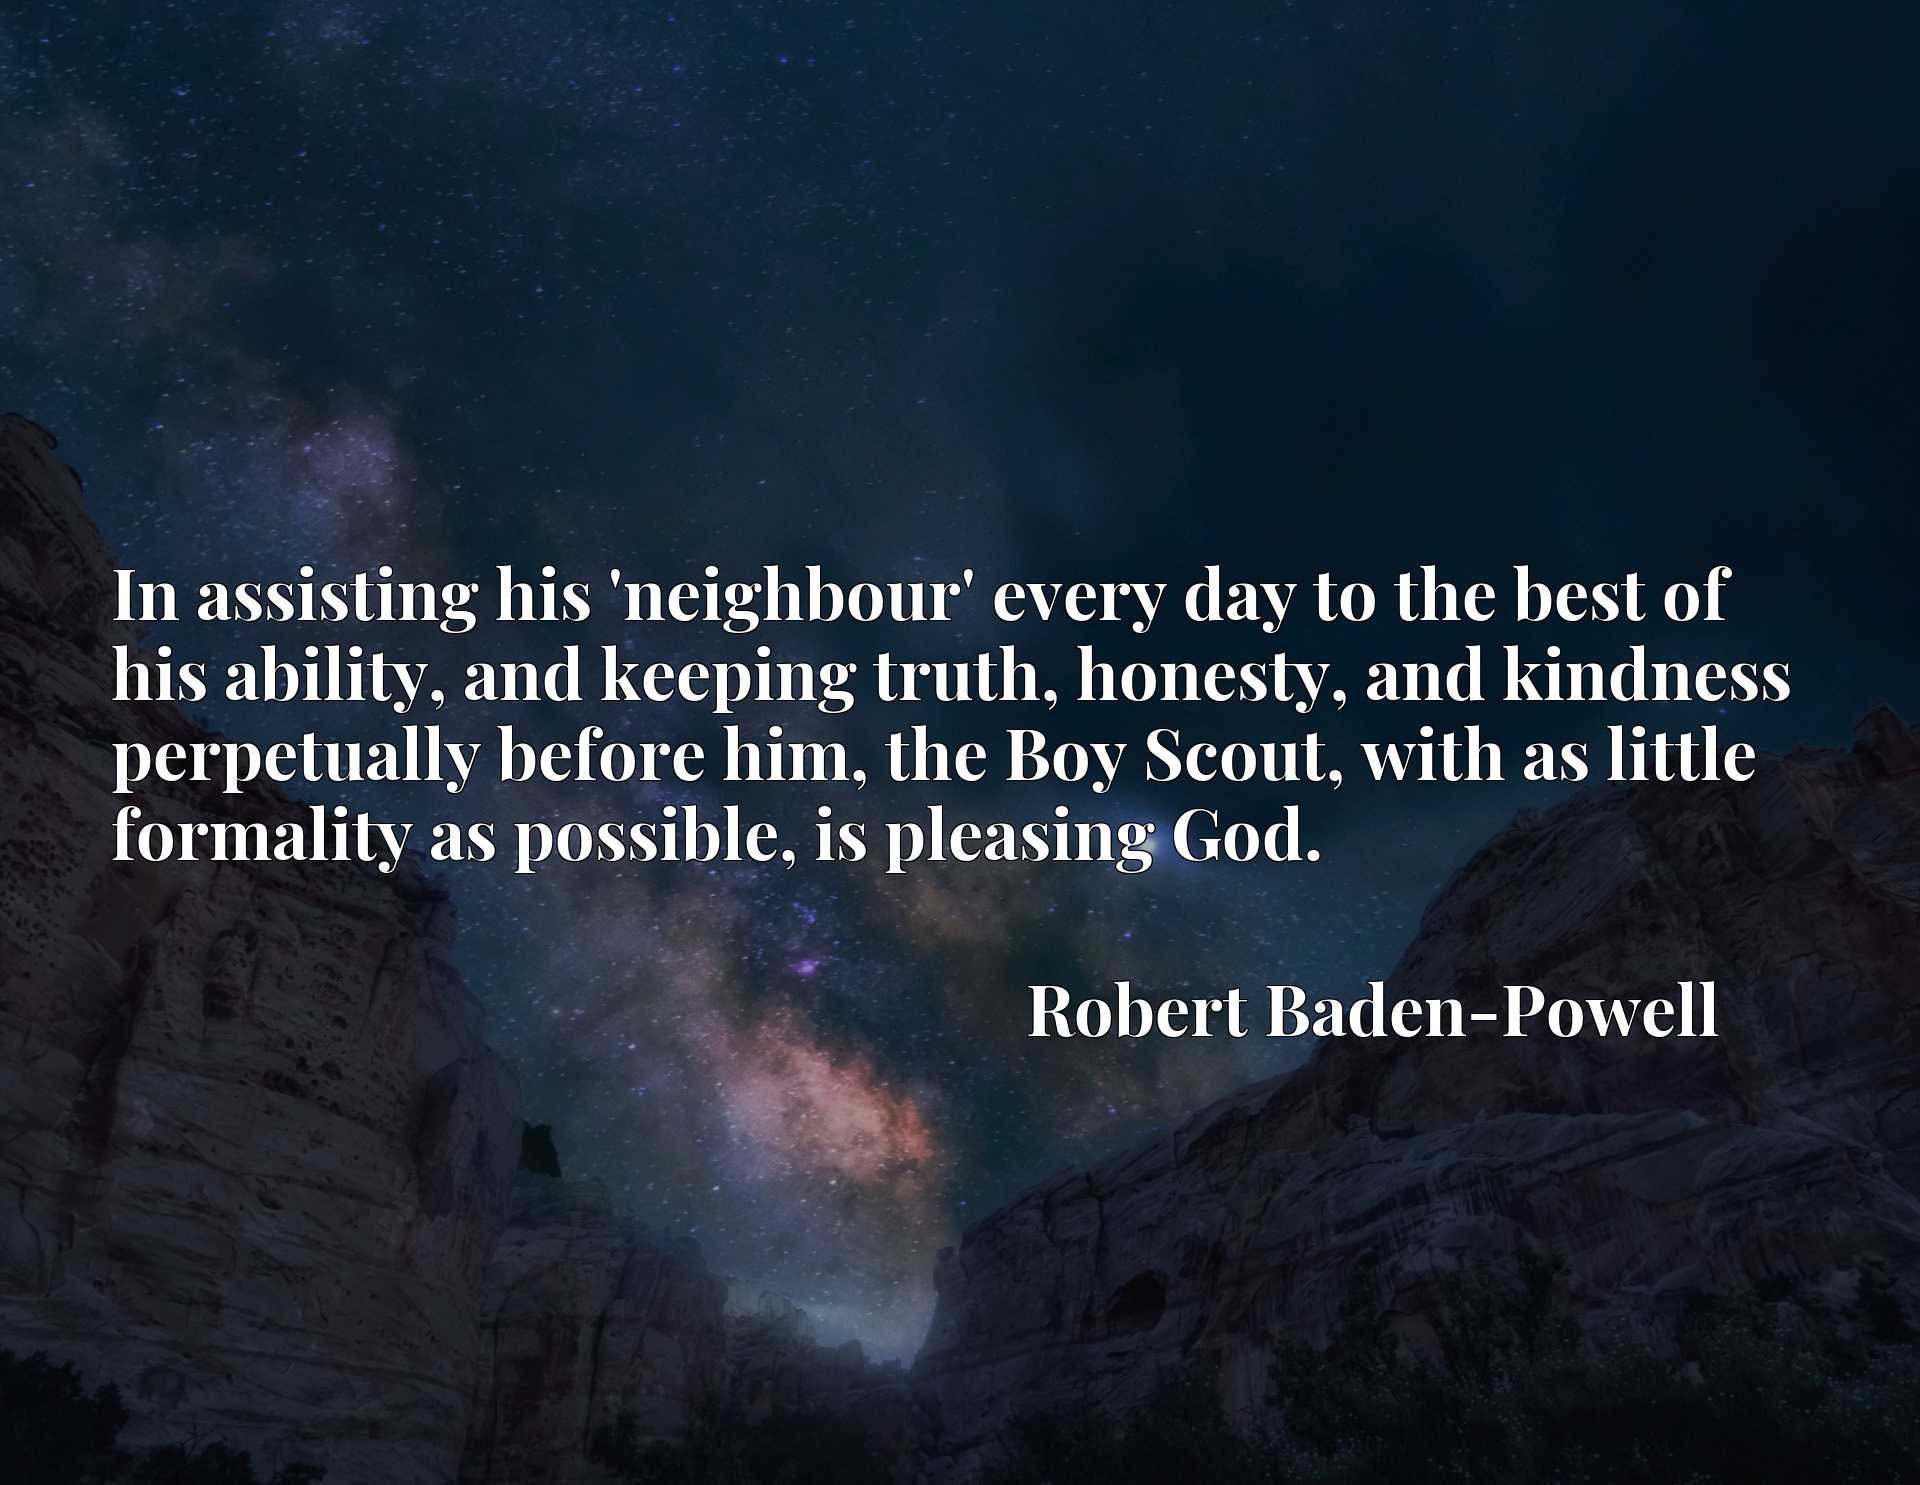 In assisting his 'neighbour' every day to the best of his ability, and keeping truth, honesty, and kindness perpetually before him, the Boy Scout, with as little formality as possible, is pleasing God.